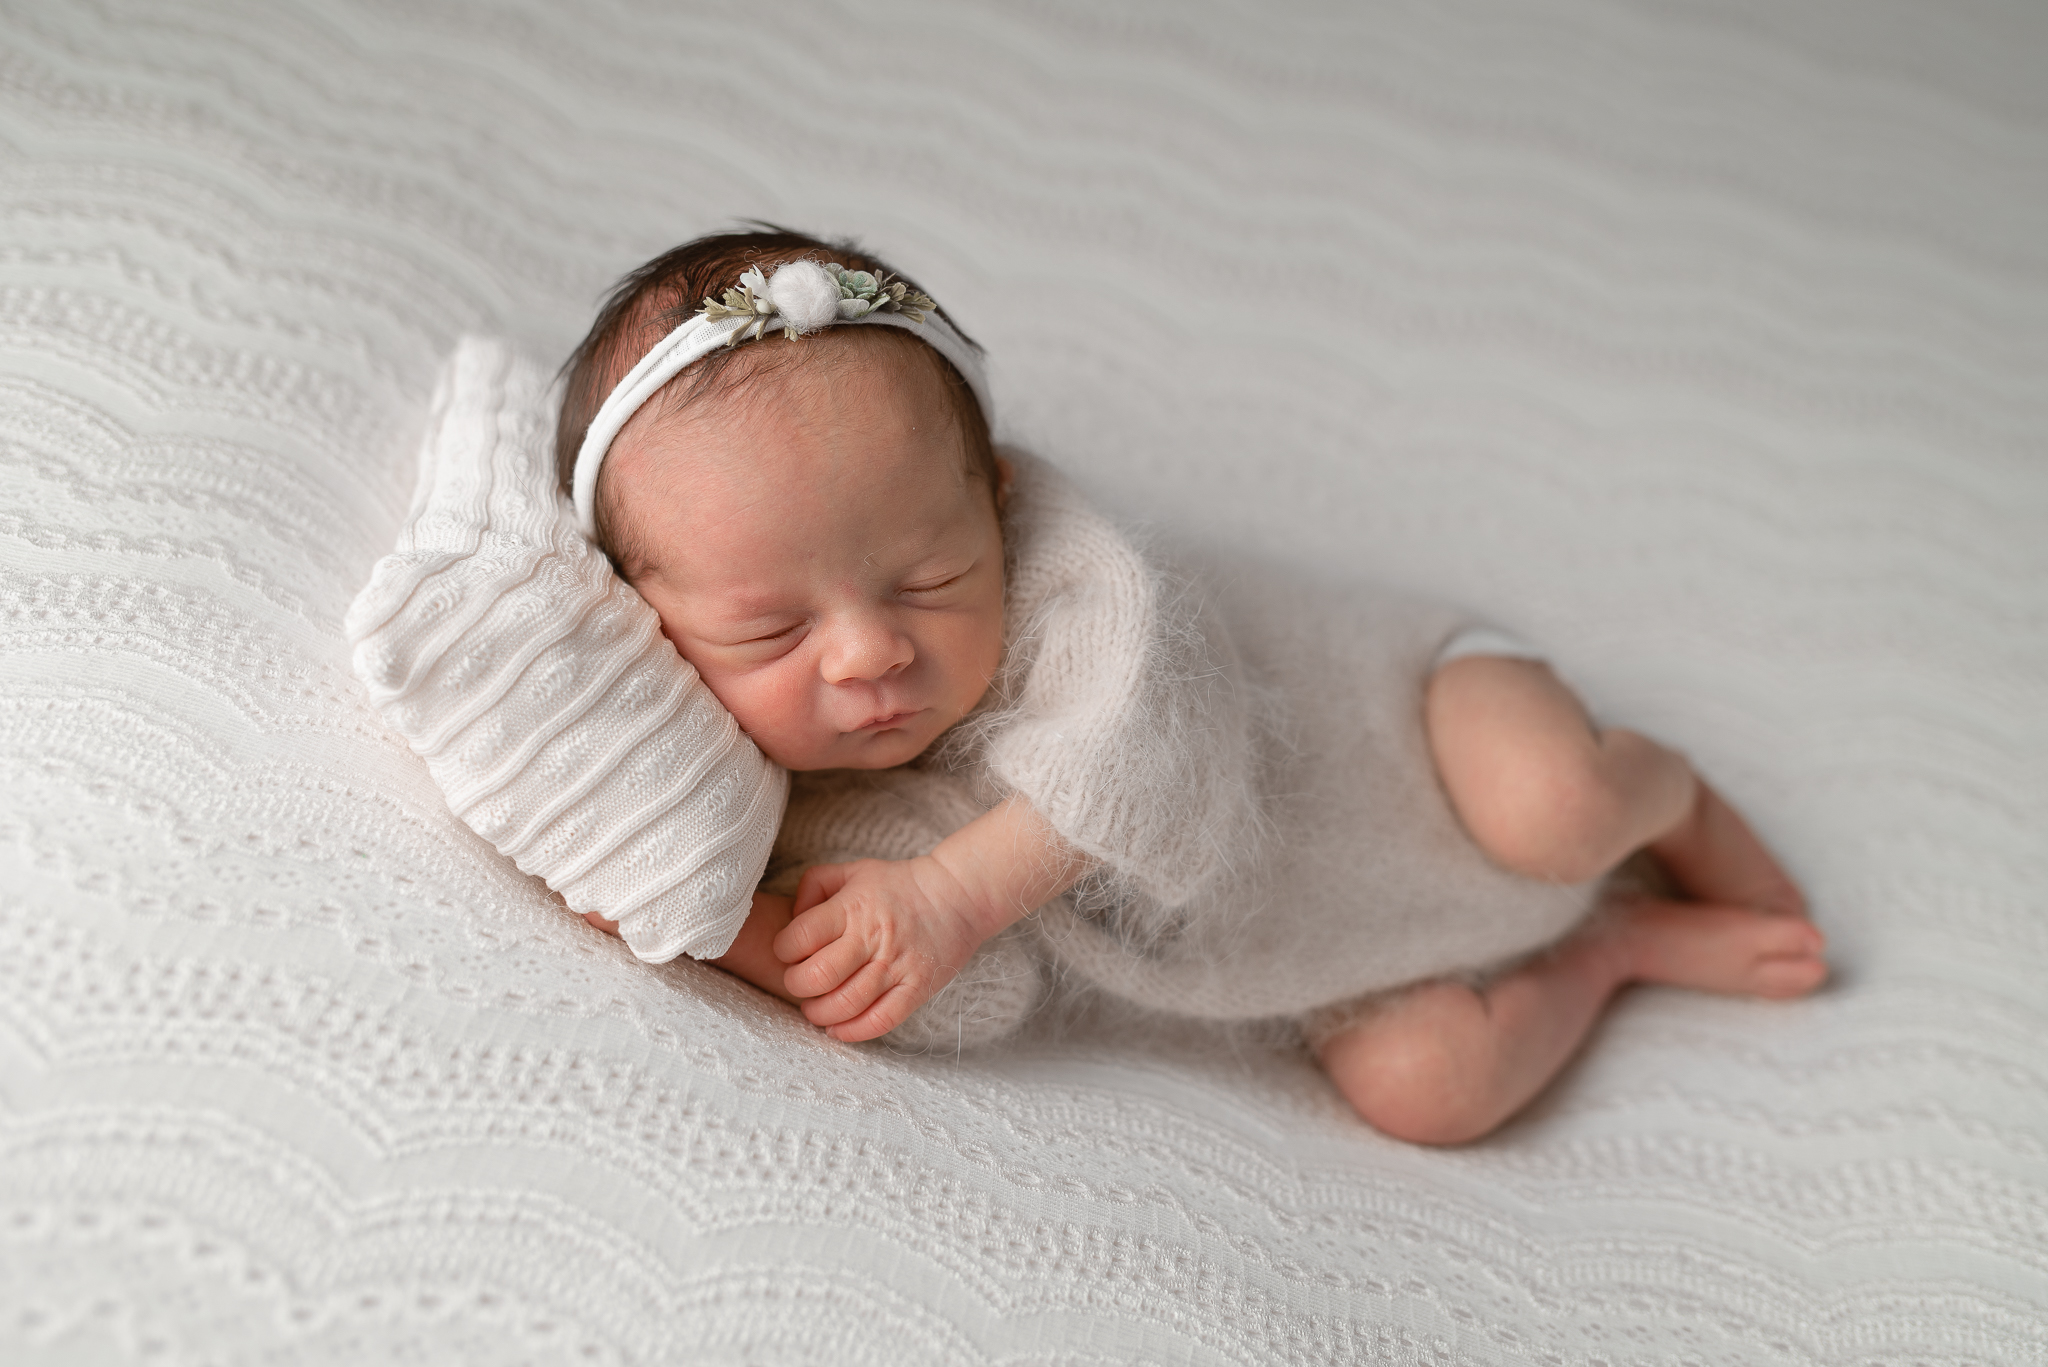 Newborn172NaomiLuciennePhotography032019-Edit.jpg